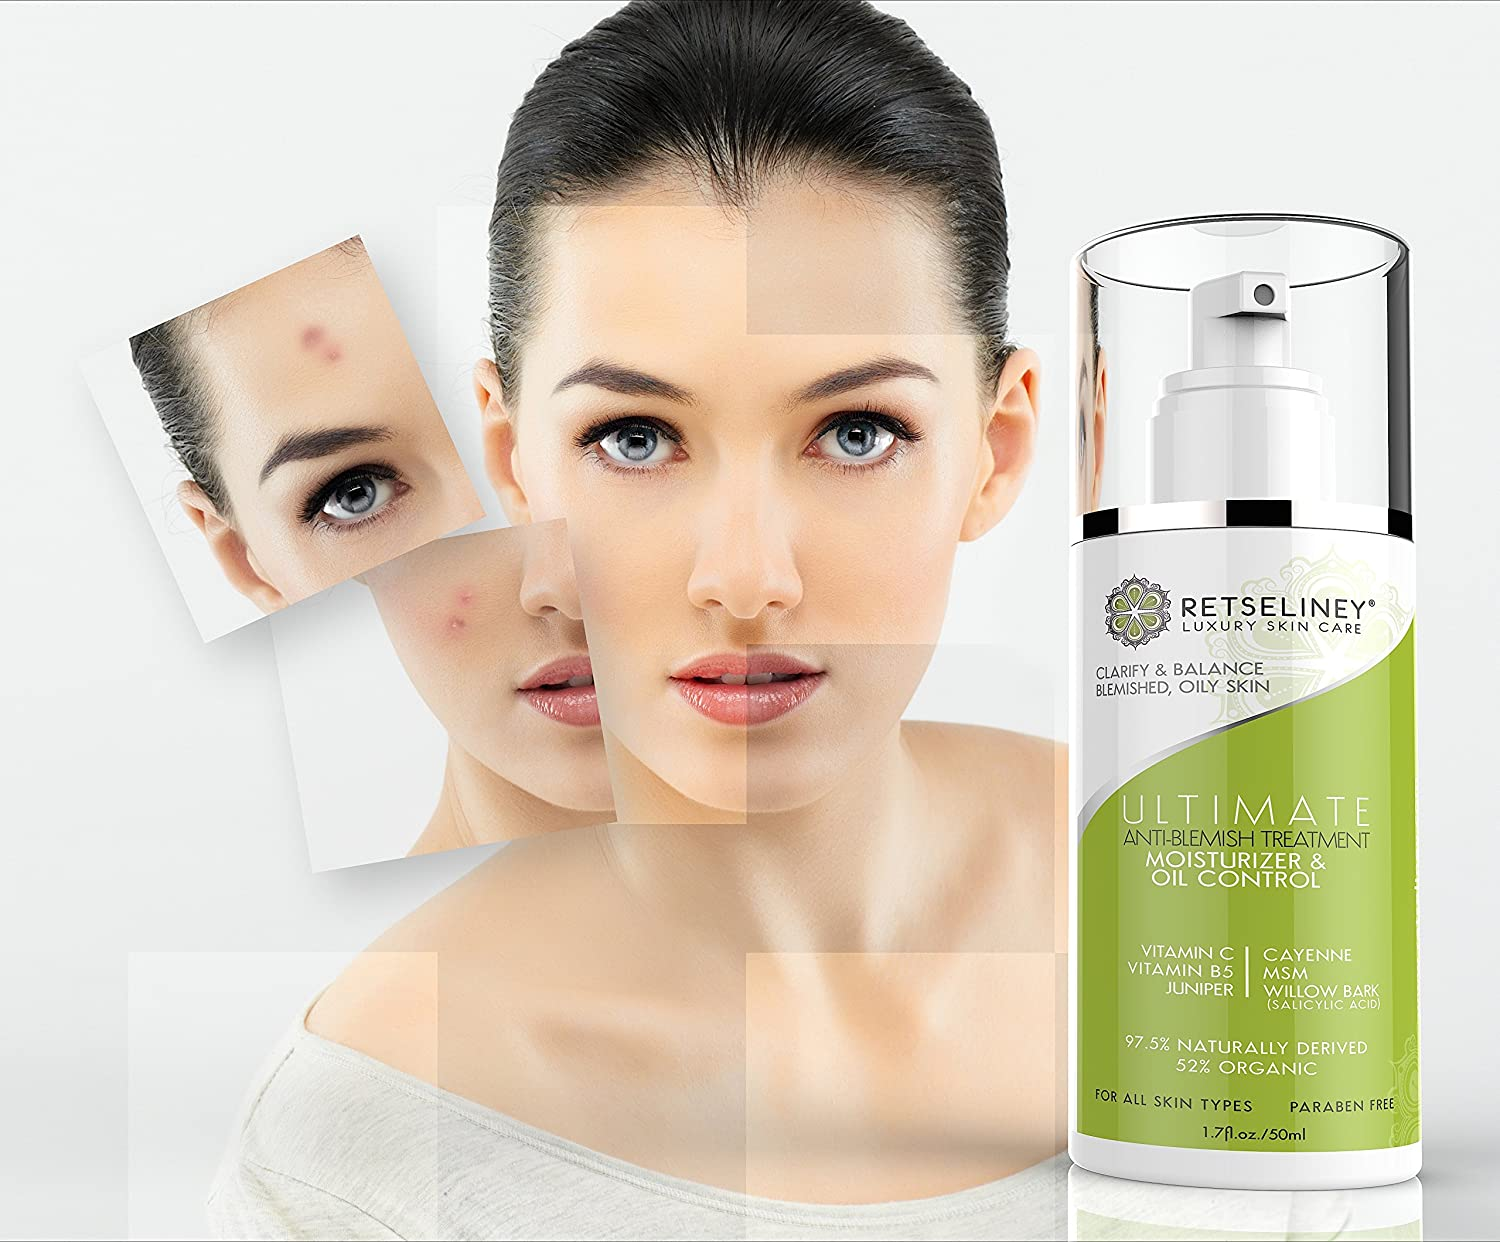 Absorb Health Anti-Blemish Mask | 1oz | Synergistic Blend to Banish Blemishs Beyond the Face